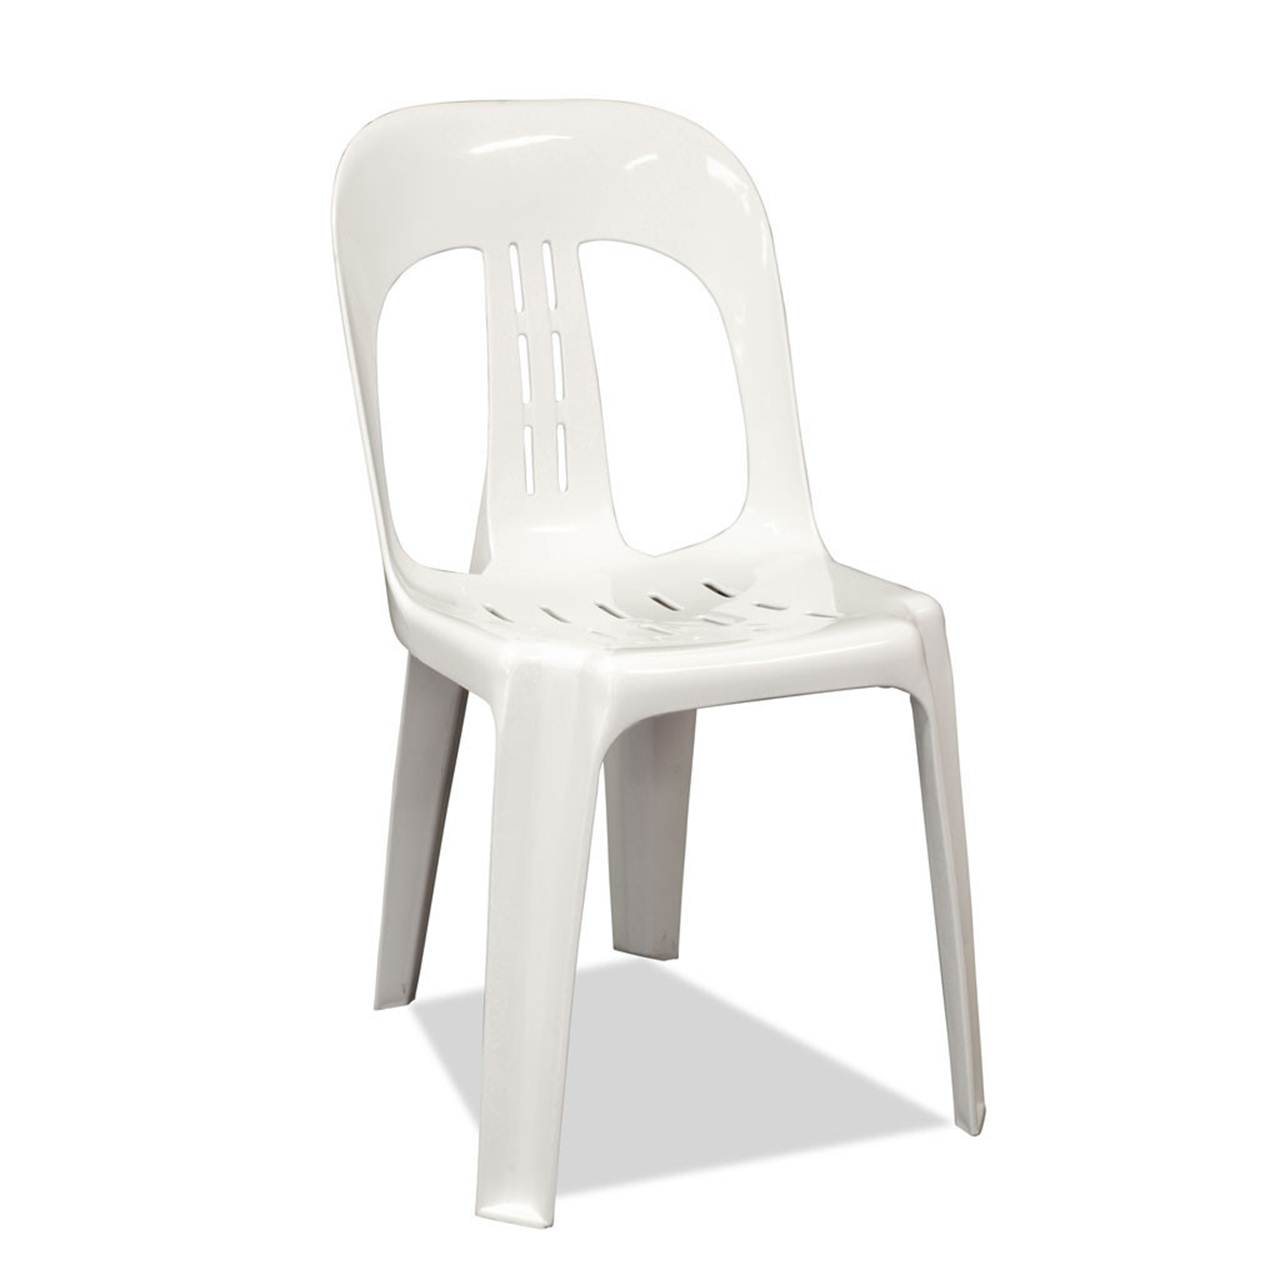 White Plastic Stacking Chair Hire Mr Party Hire